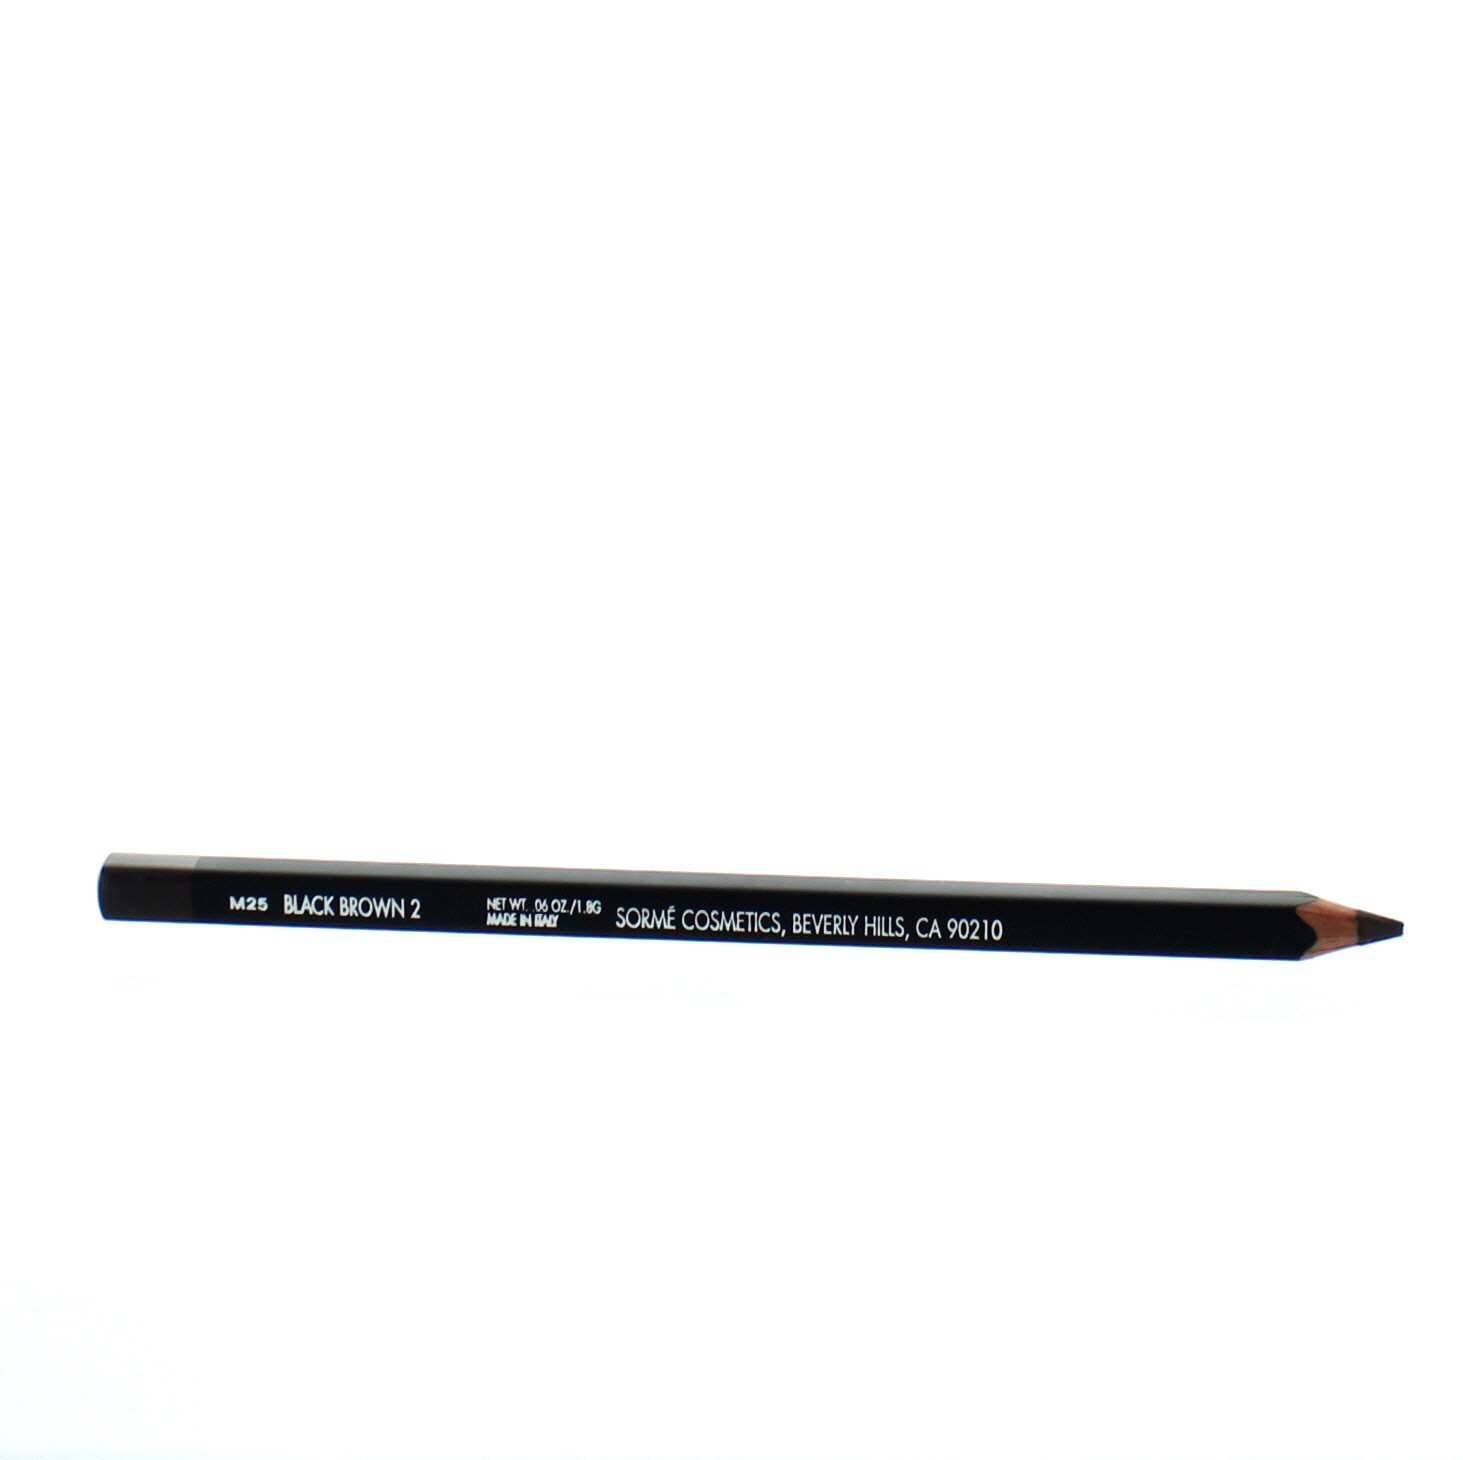 Sorme Waterproof Smearproof Eyeliner Black Brown #2